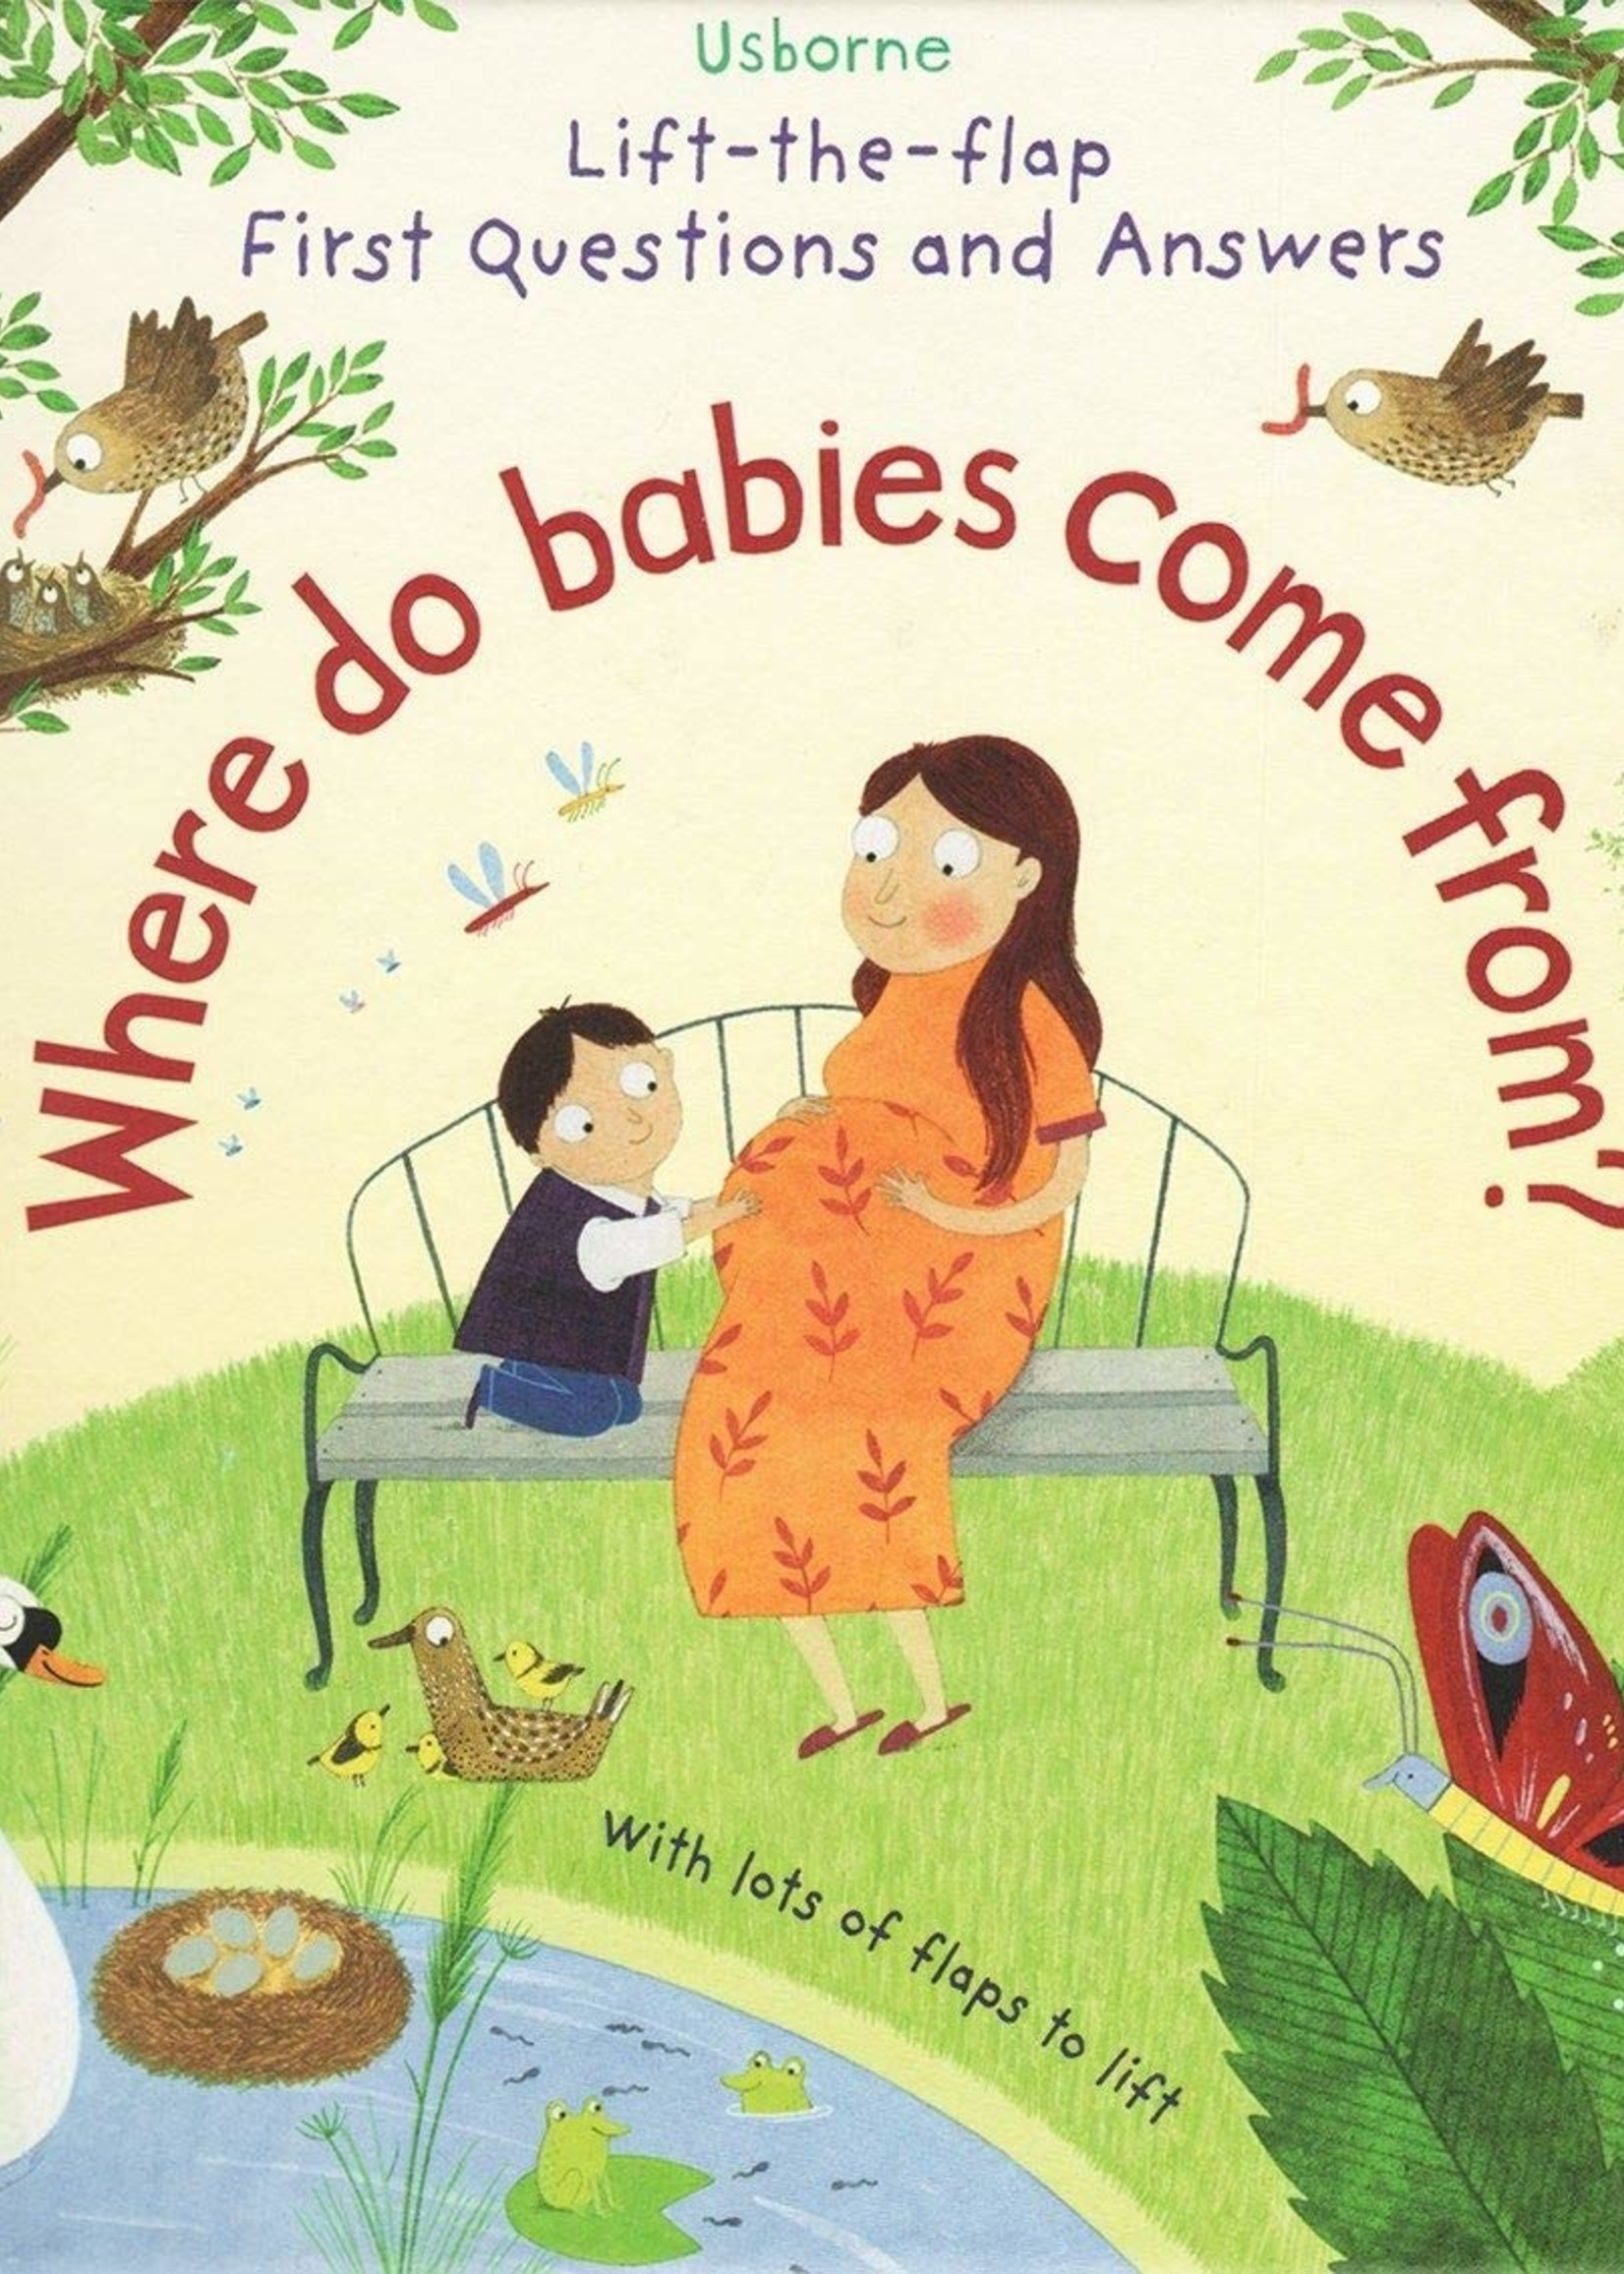 Usborne Where Do Babies Come From? Lift-the-flap - Board Book